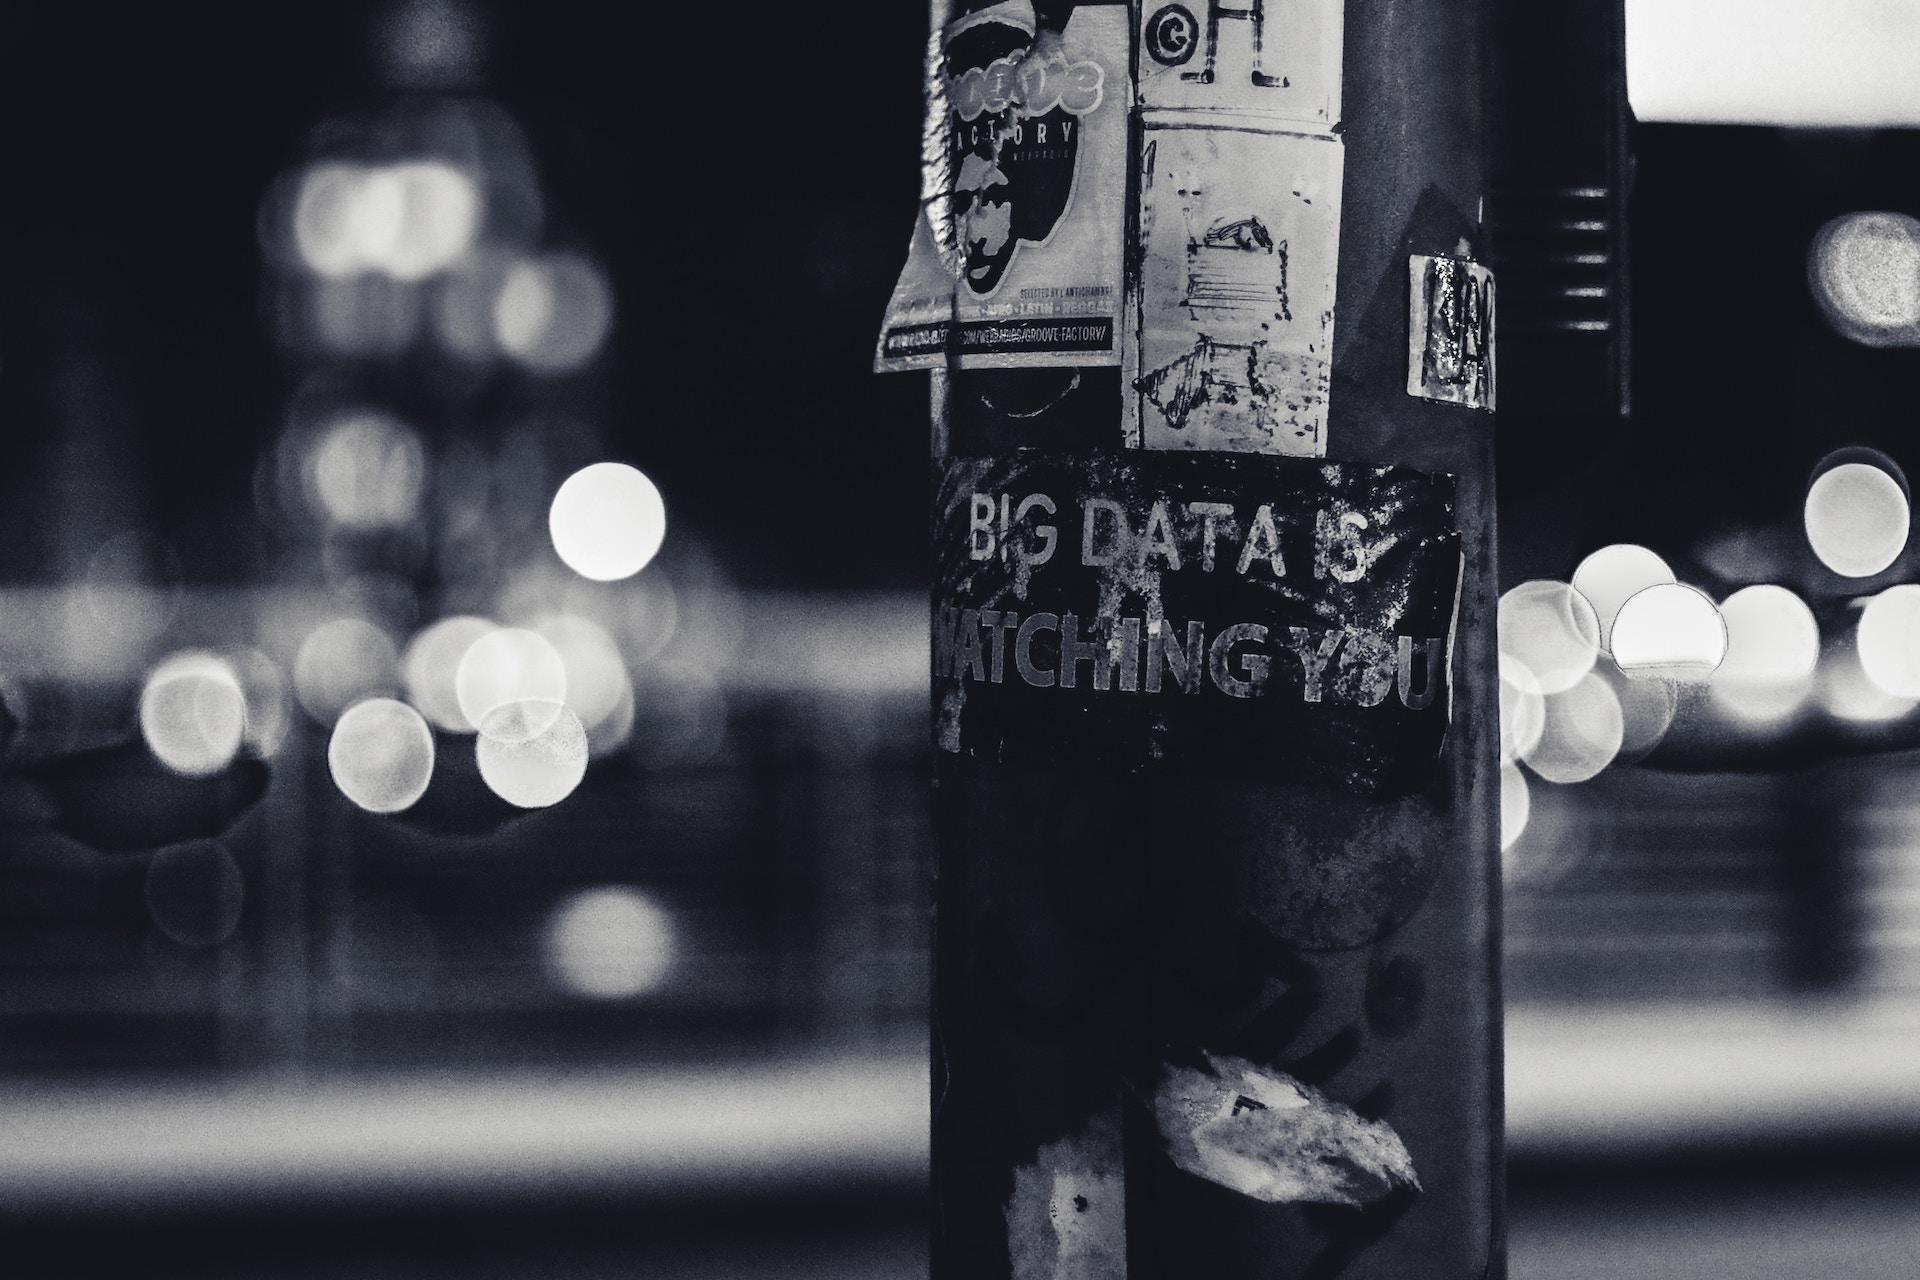 Big Data is Watching sign